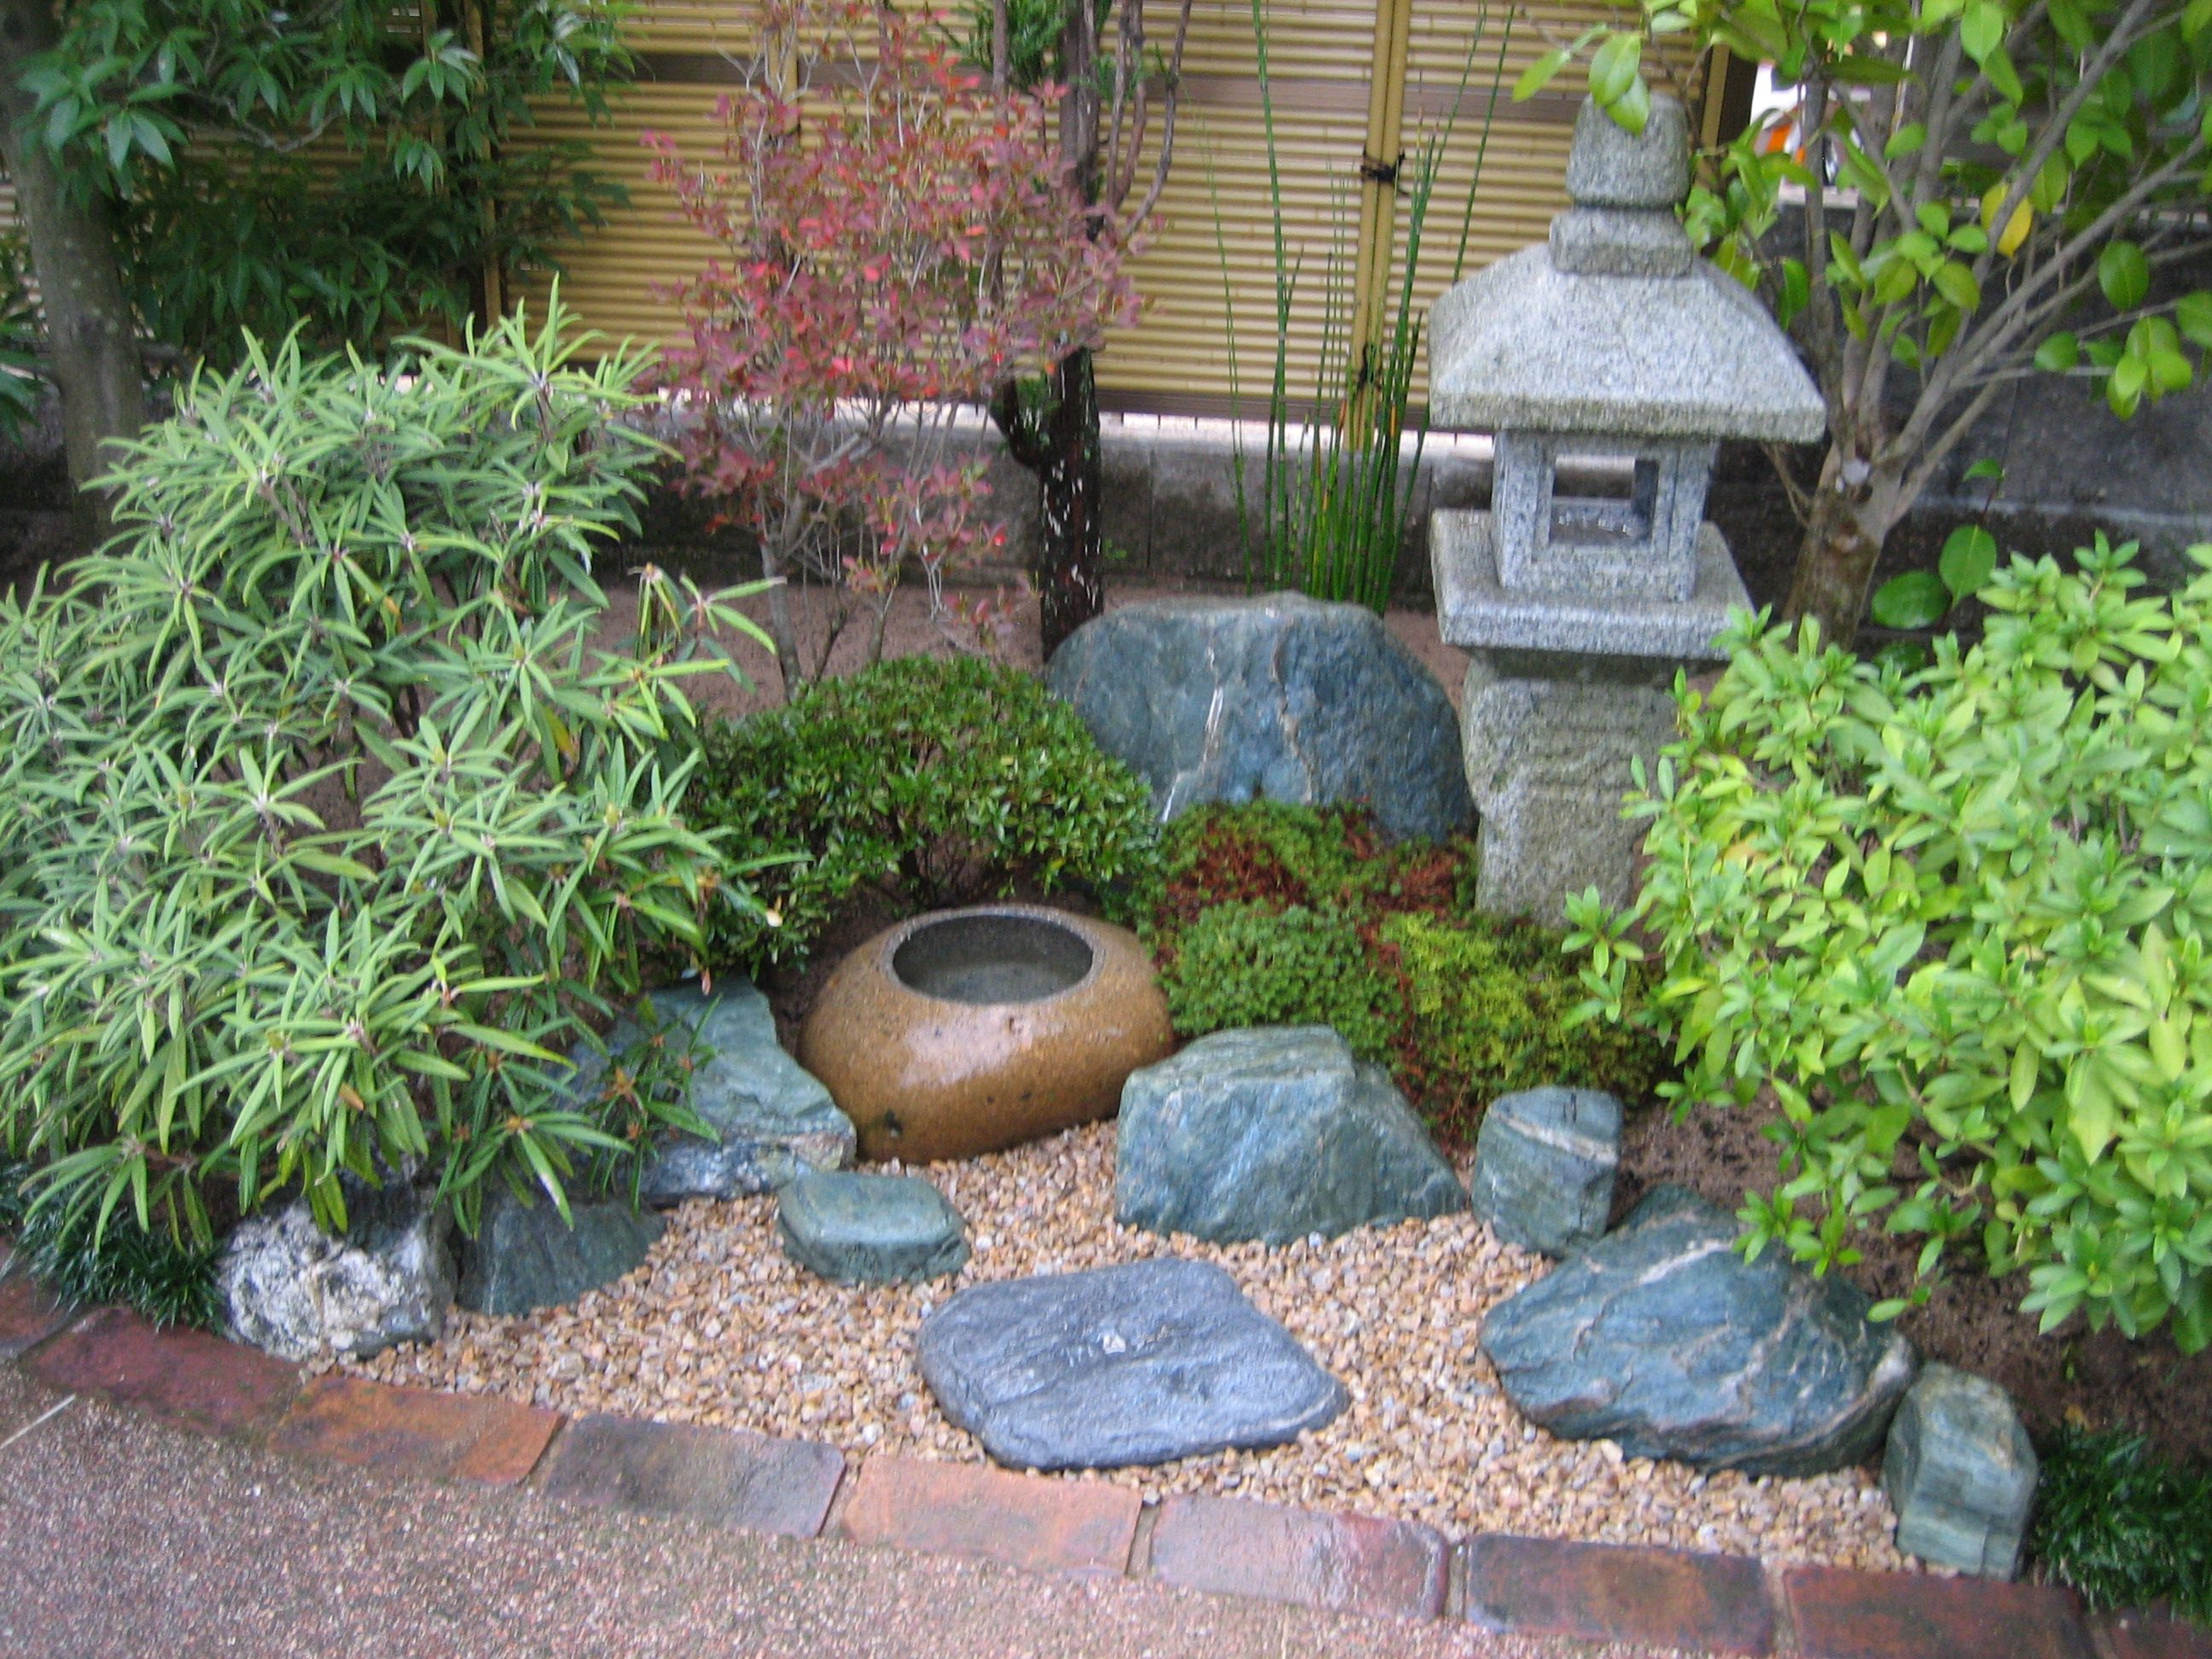 Japanese Garden Ideas Plants custom japanese garden terrarium with miniature path pagoda tree in a large apothecary jar Small Space Japanese Garden 10 15 More